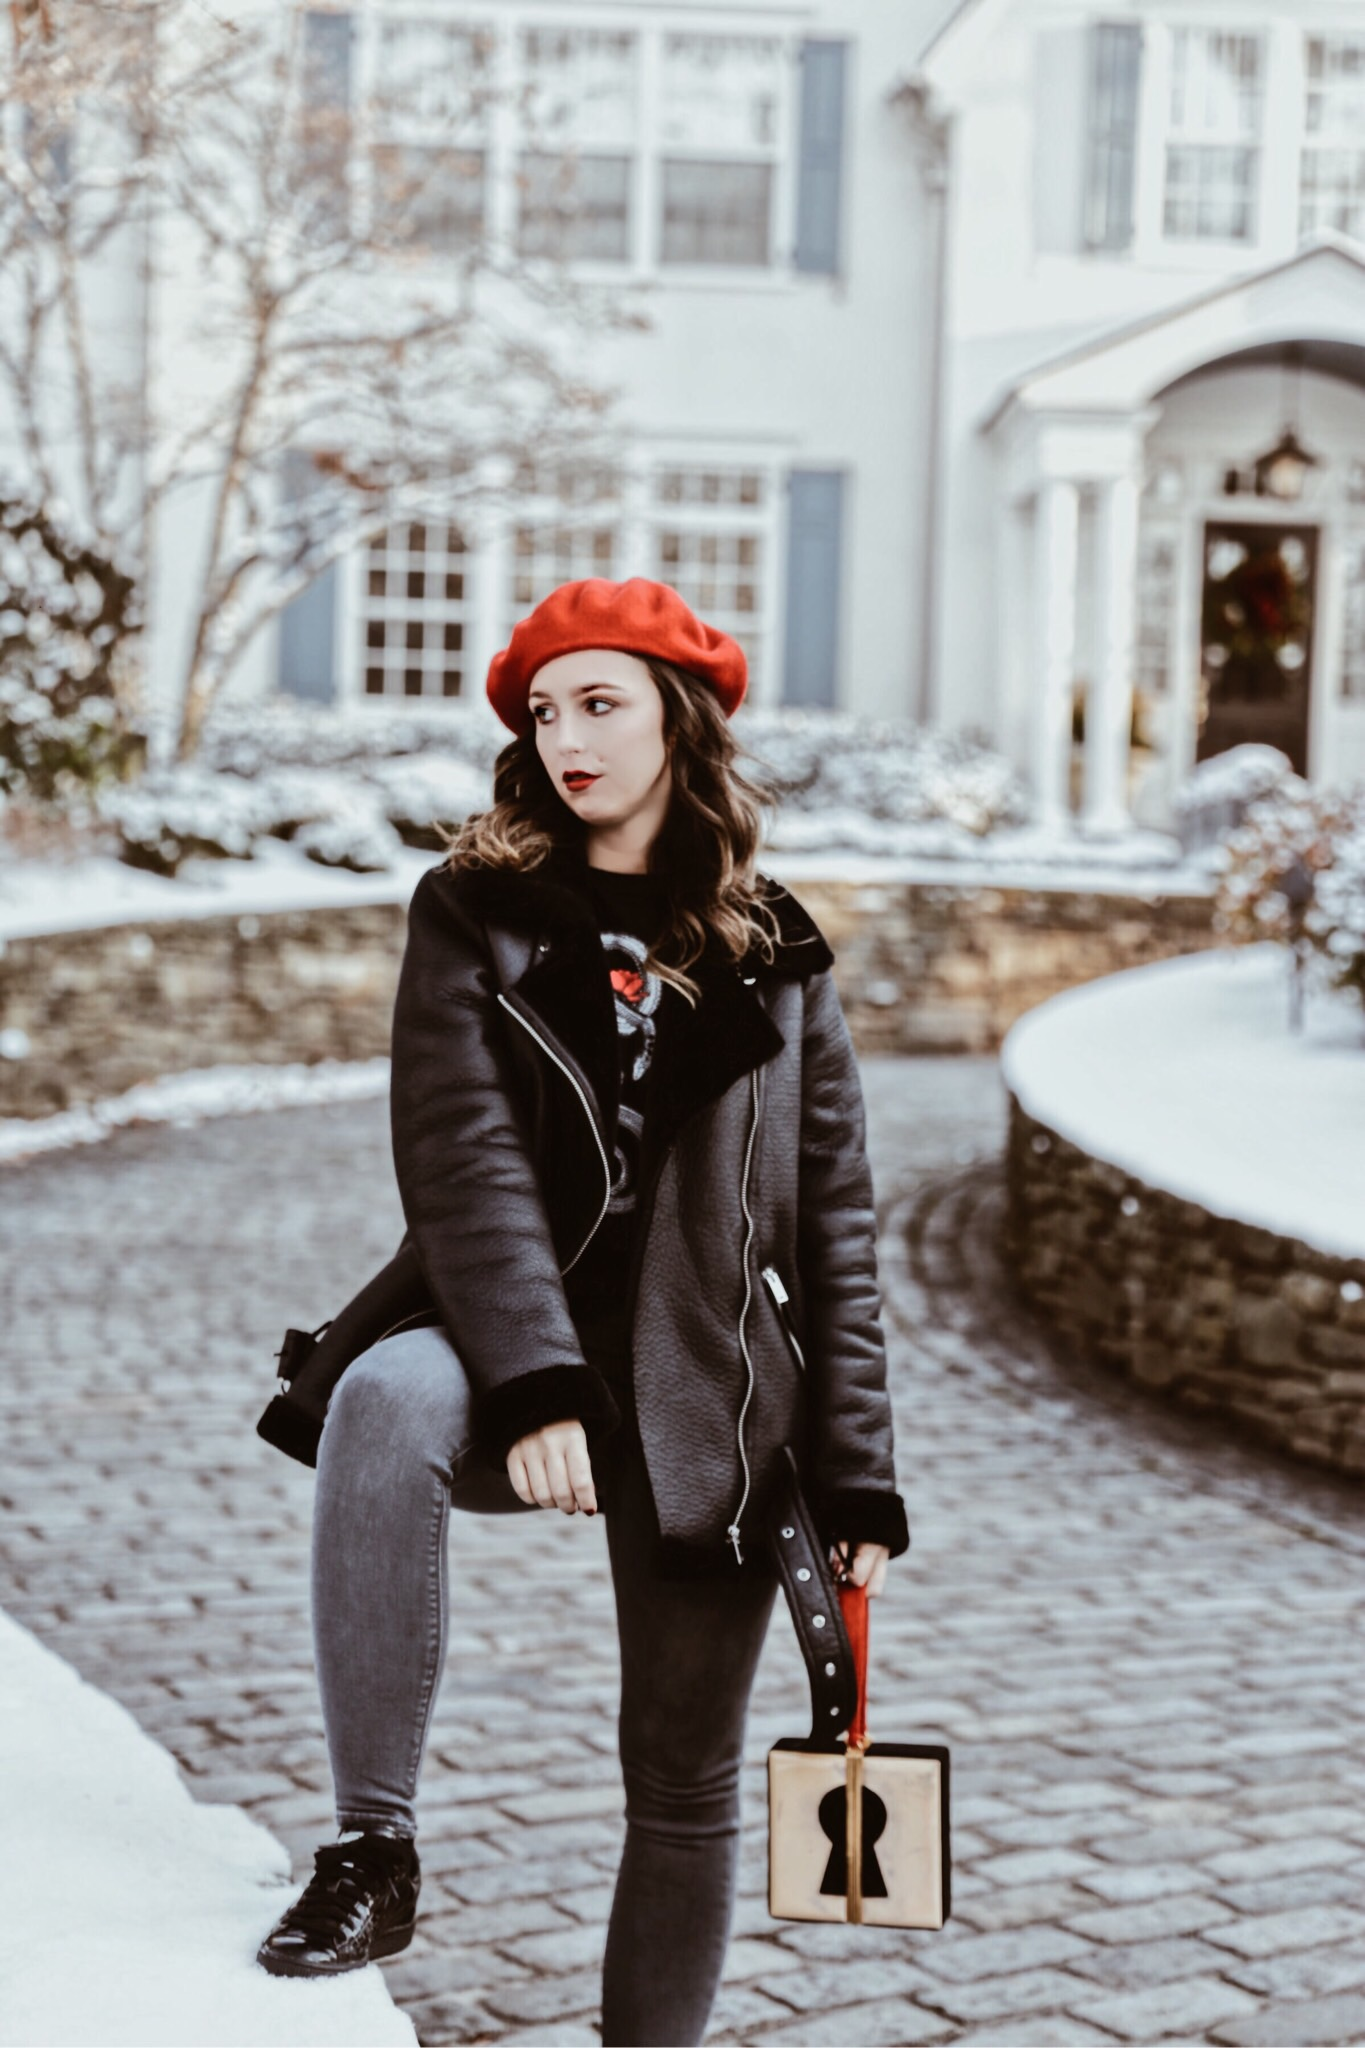 Staying Motivated-beret-pop of red-t shirt-street style-fashion-outfit-edgy style-new york-nyc-suburbs-casual outfit-ootd